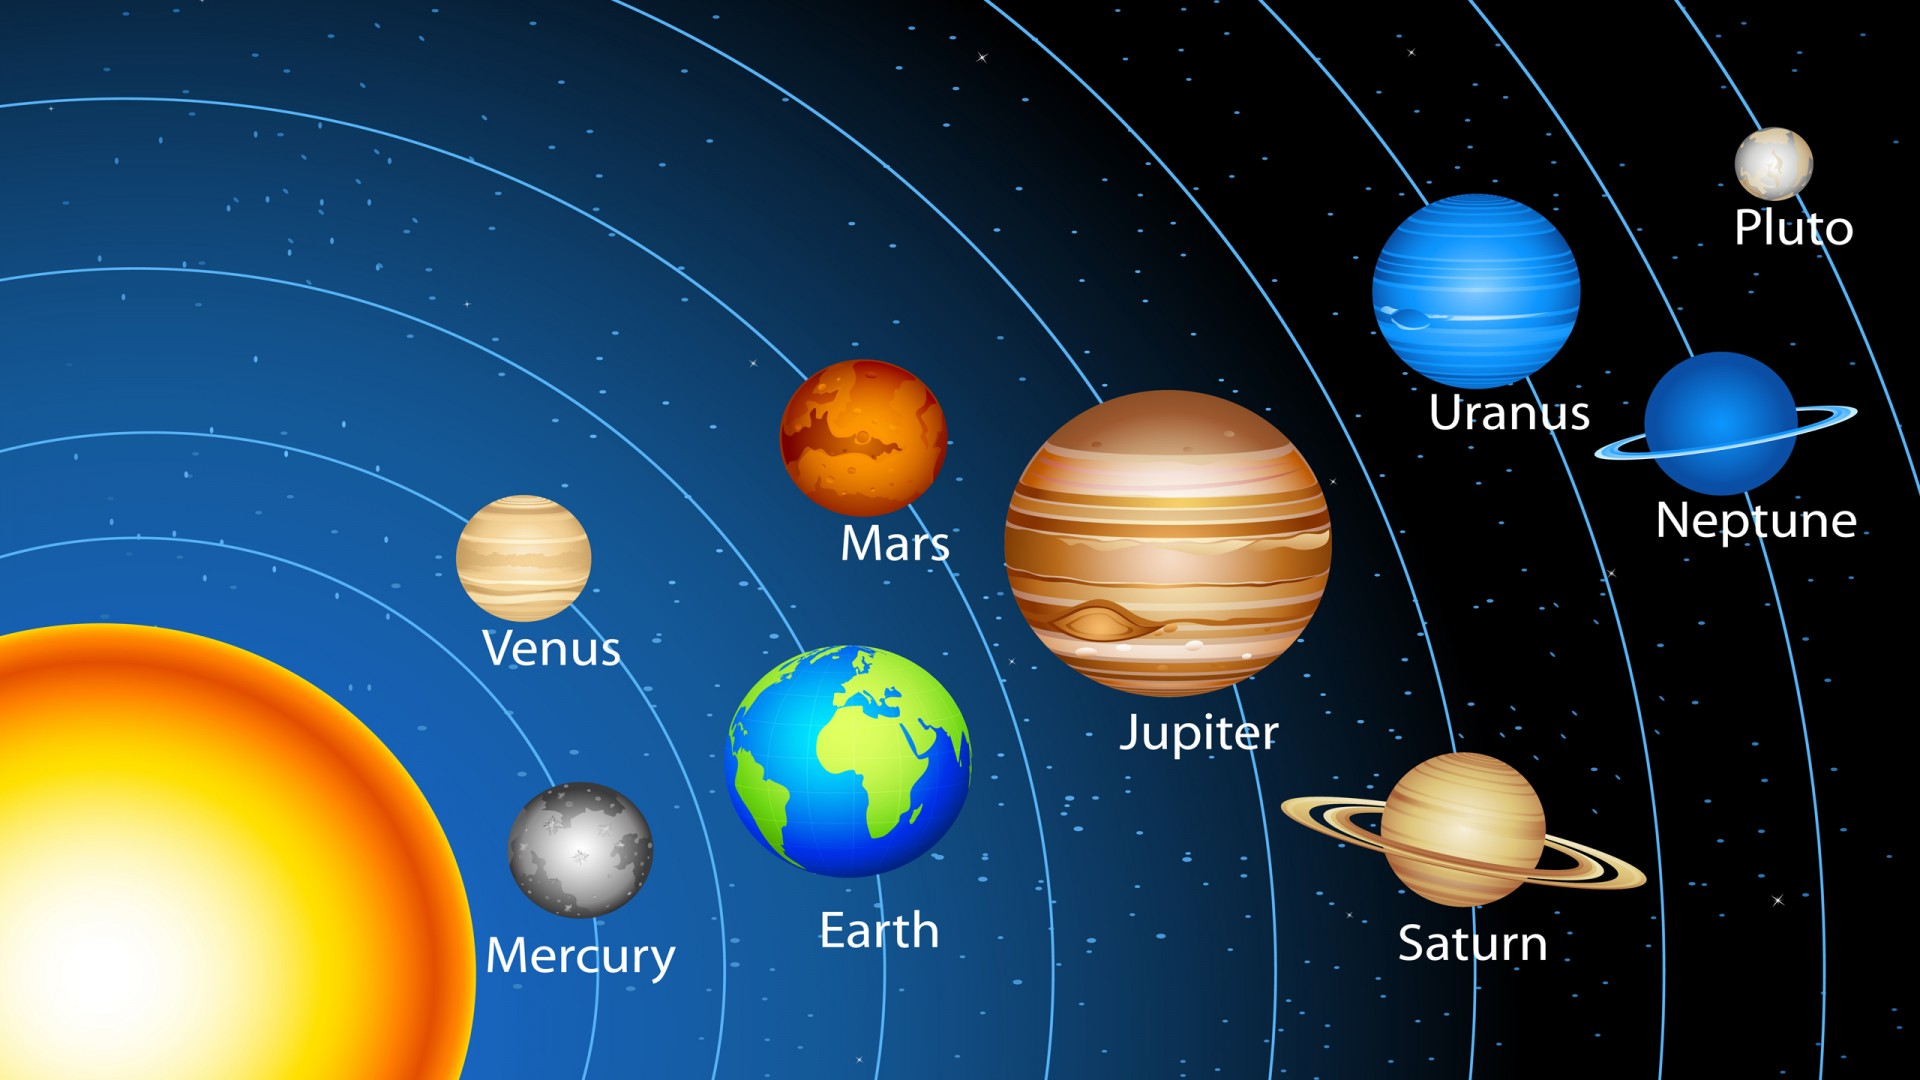 Solar System Wallpaper Free Download